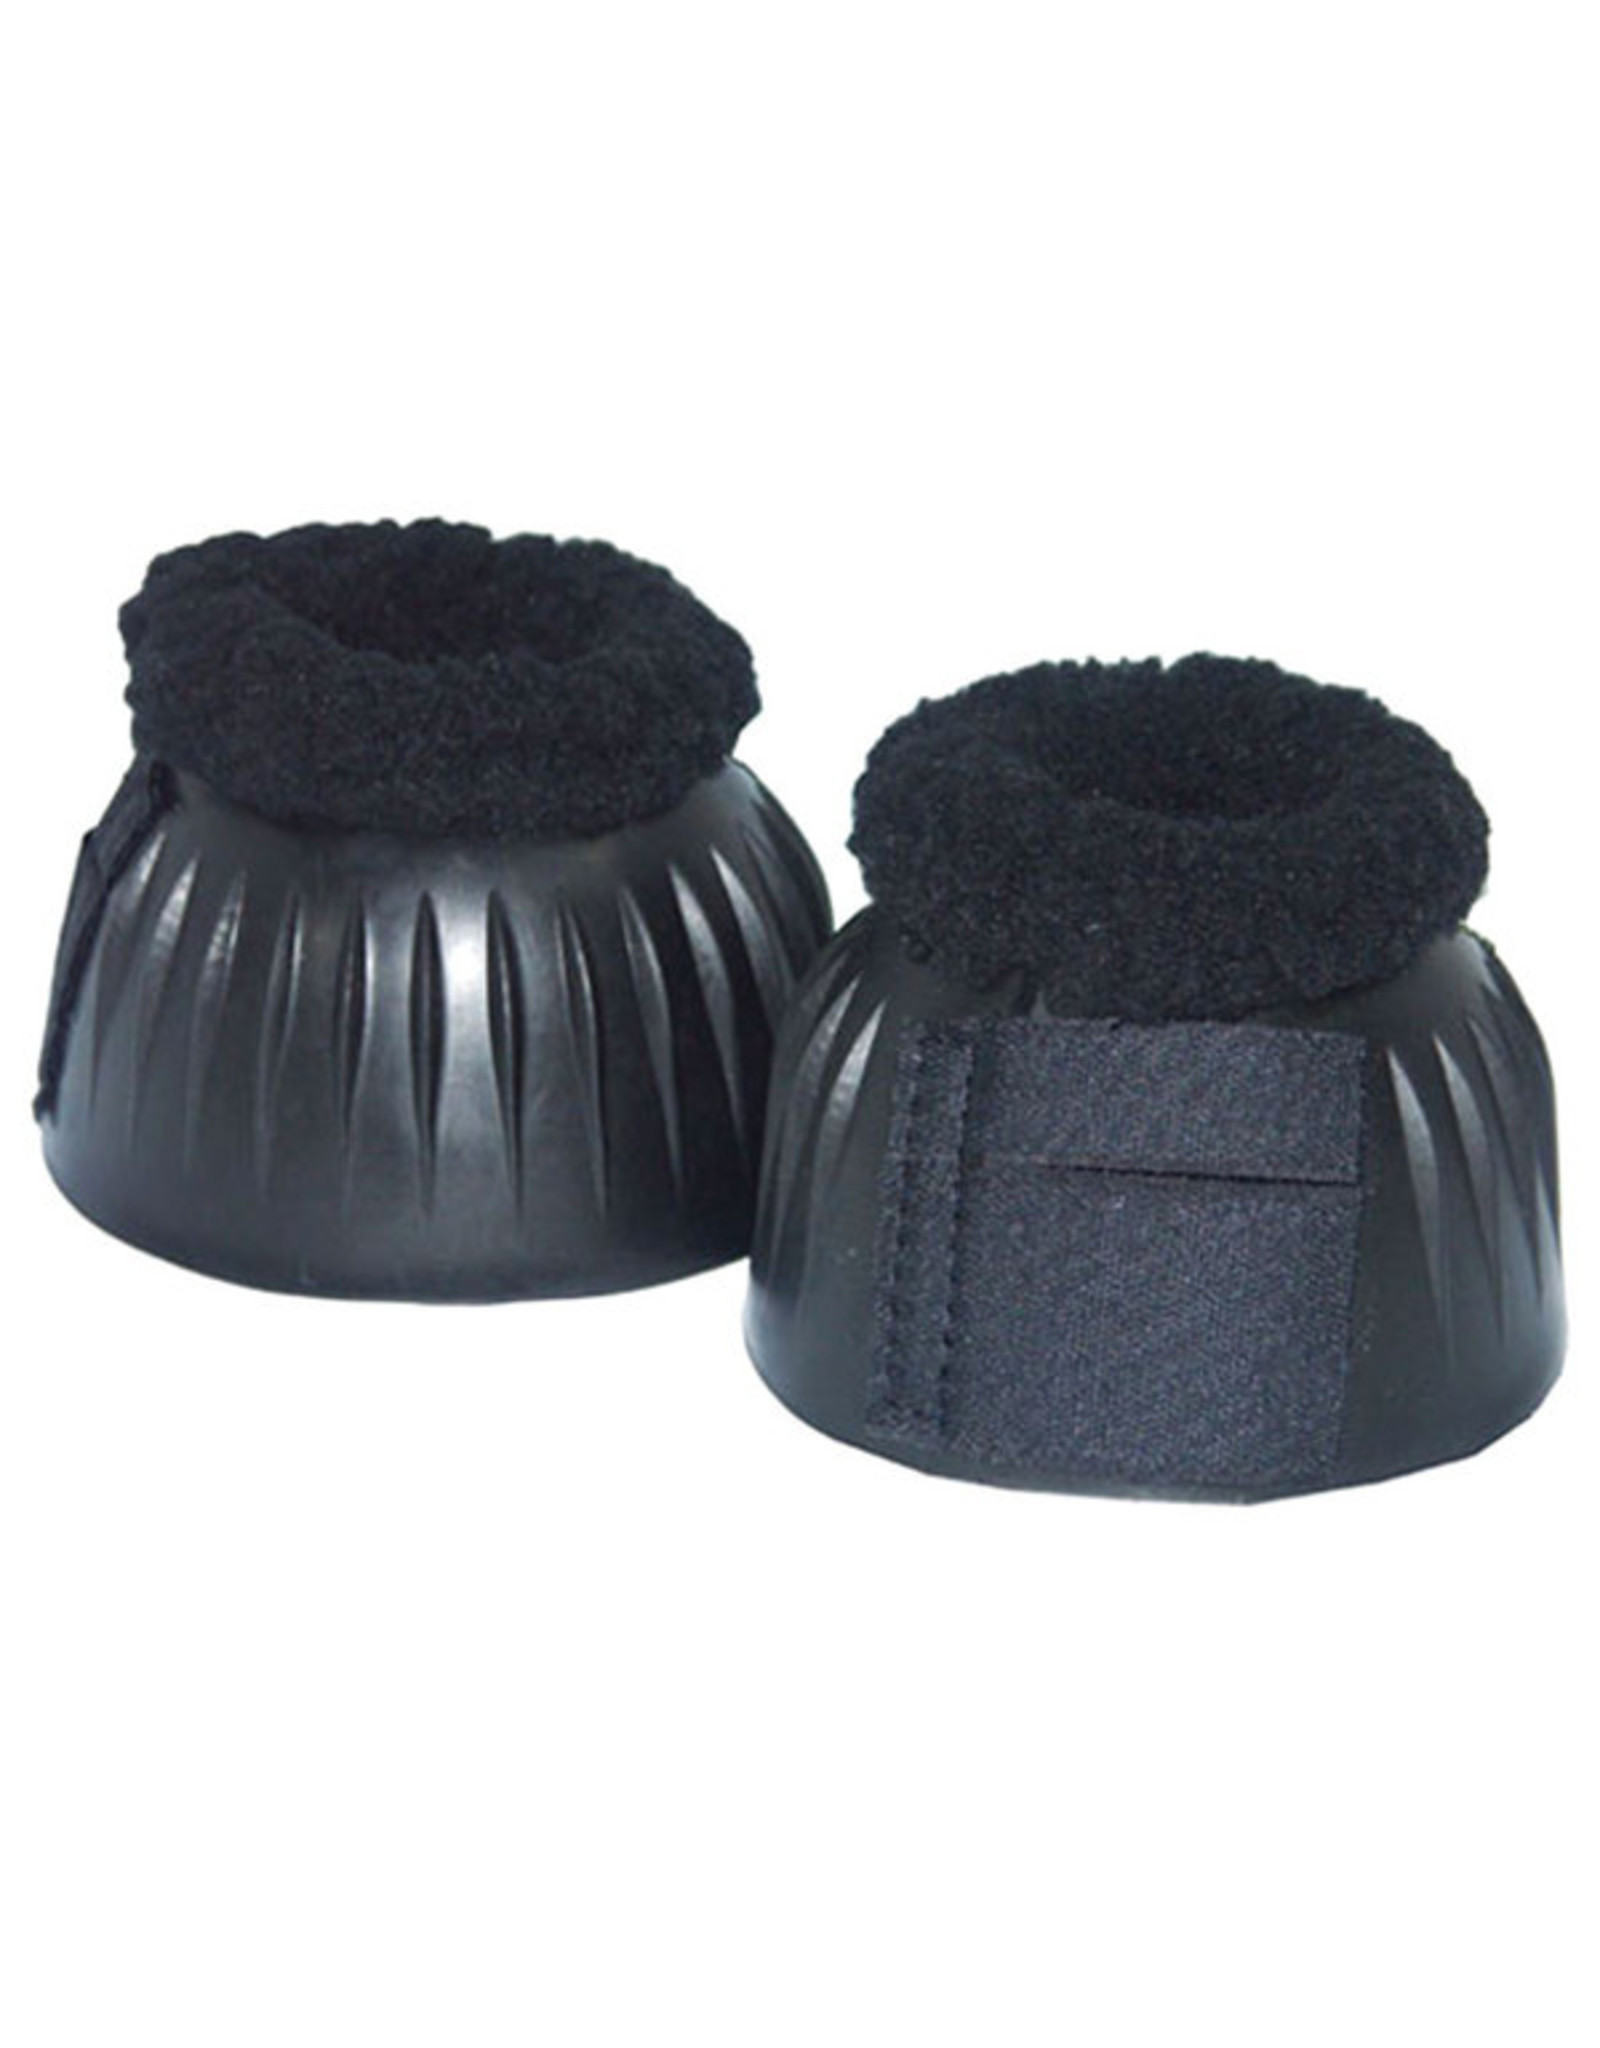 Intrepid International Bell Boots with Fleece